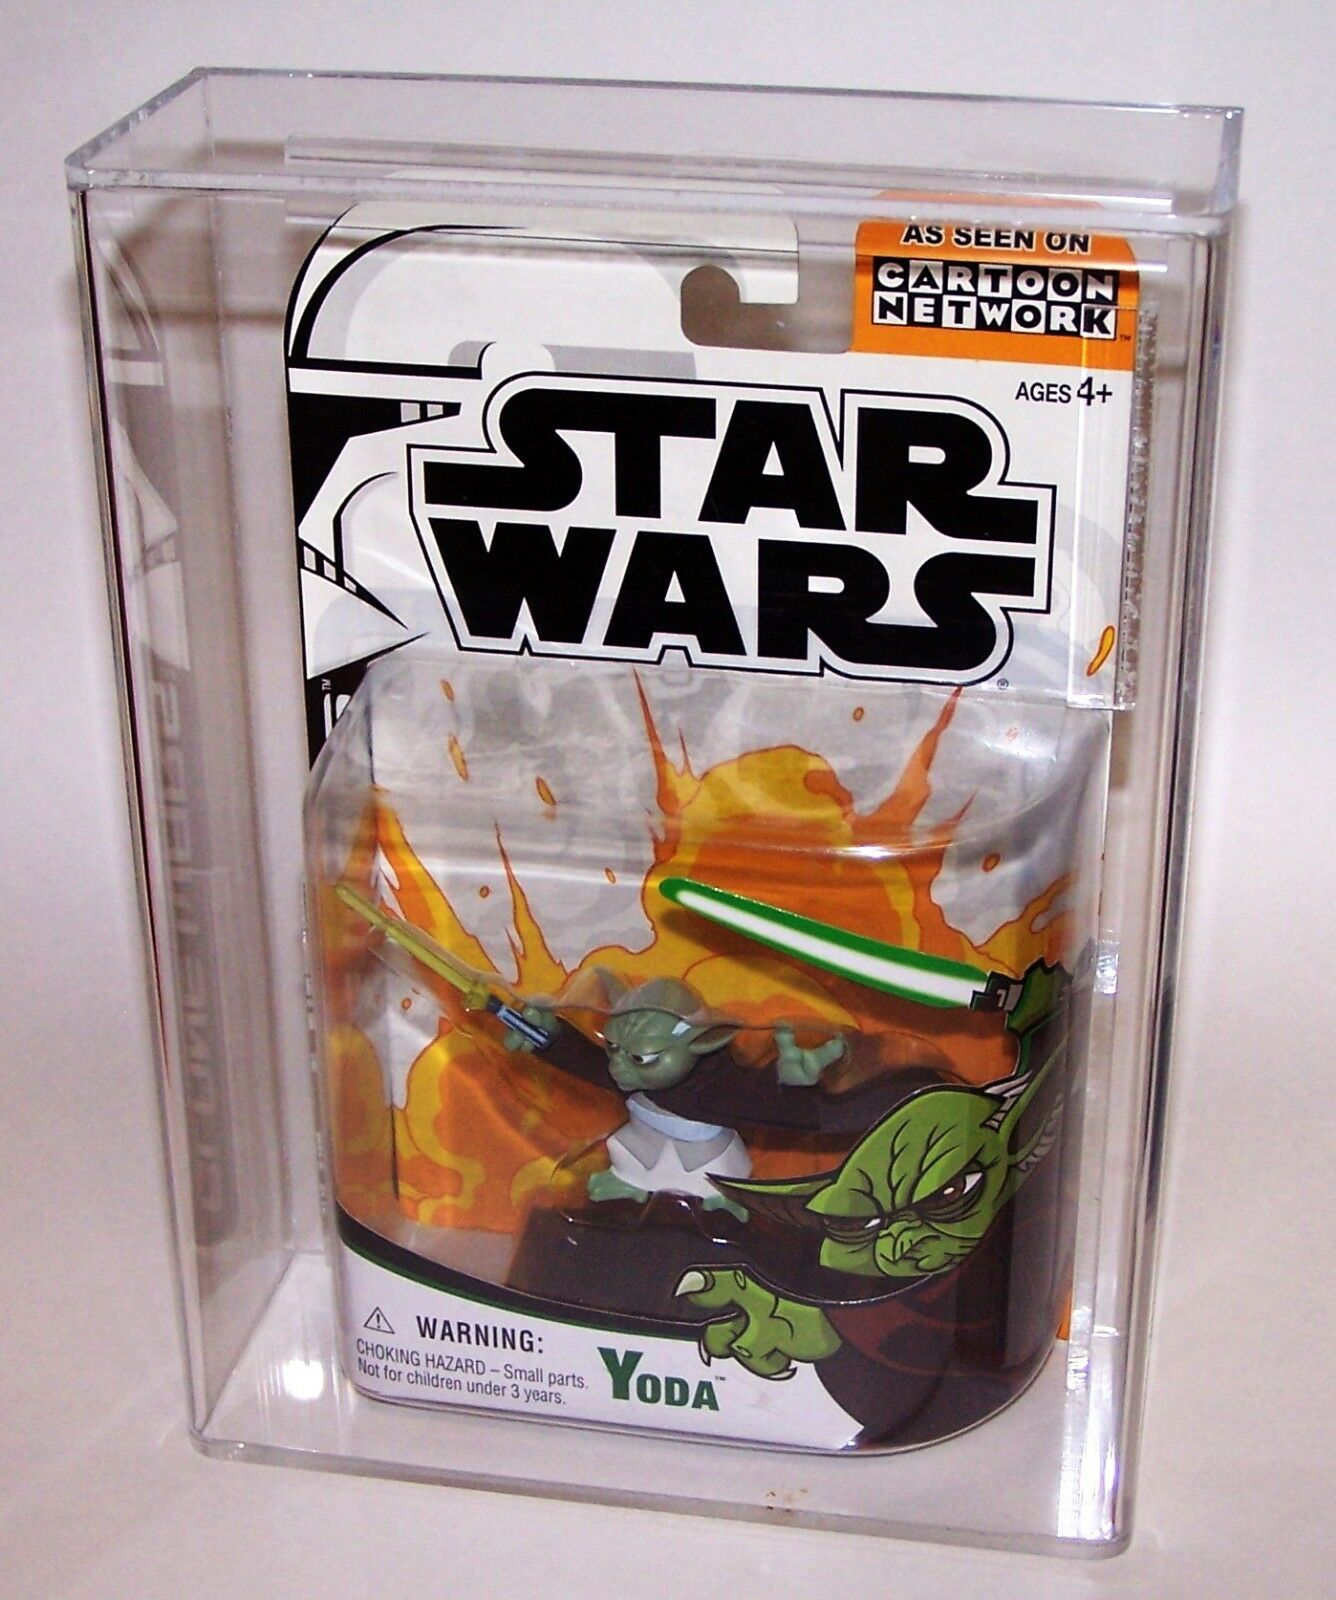 Star Wars Clone Wars Animated Yoda Action Figure Hasbro 2004 Graded AFA 85 NM+